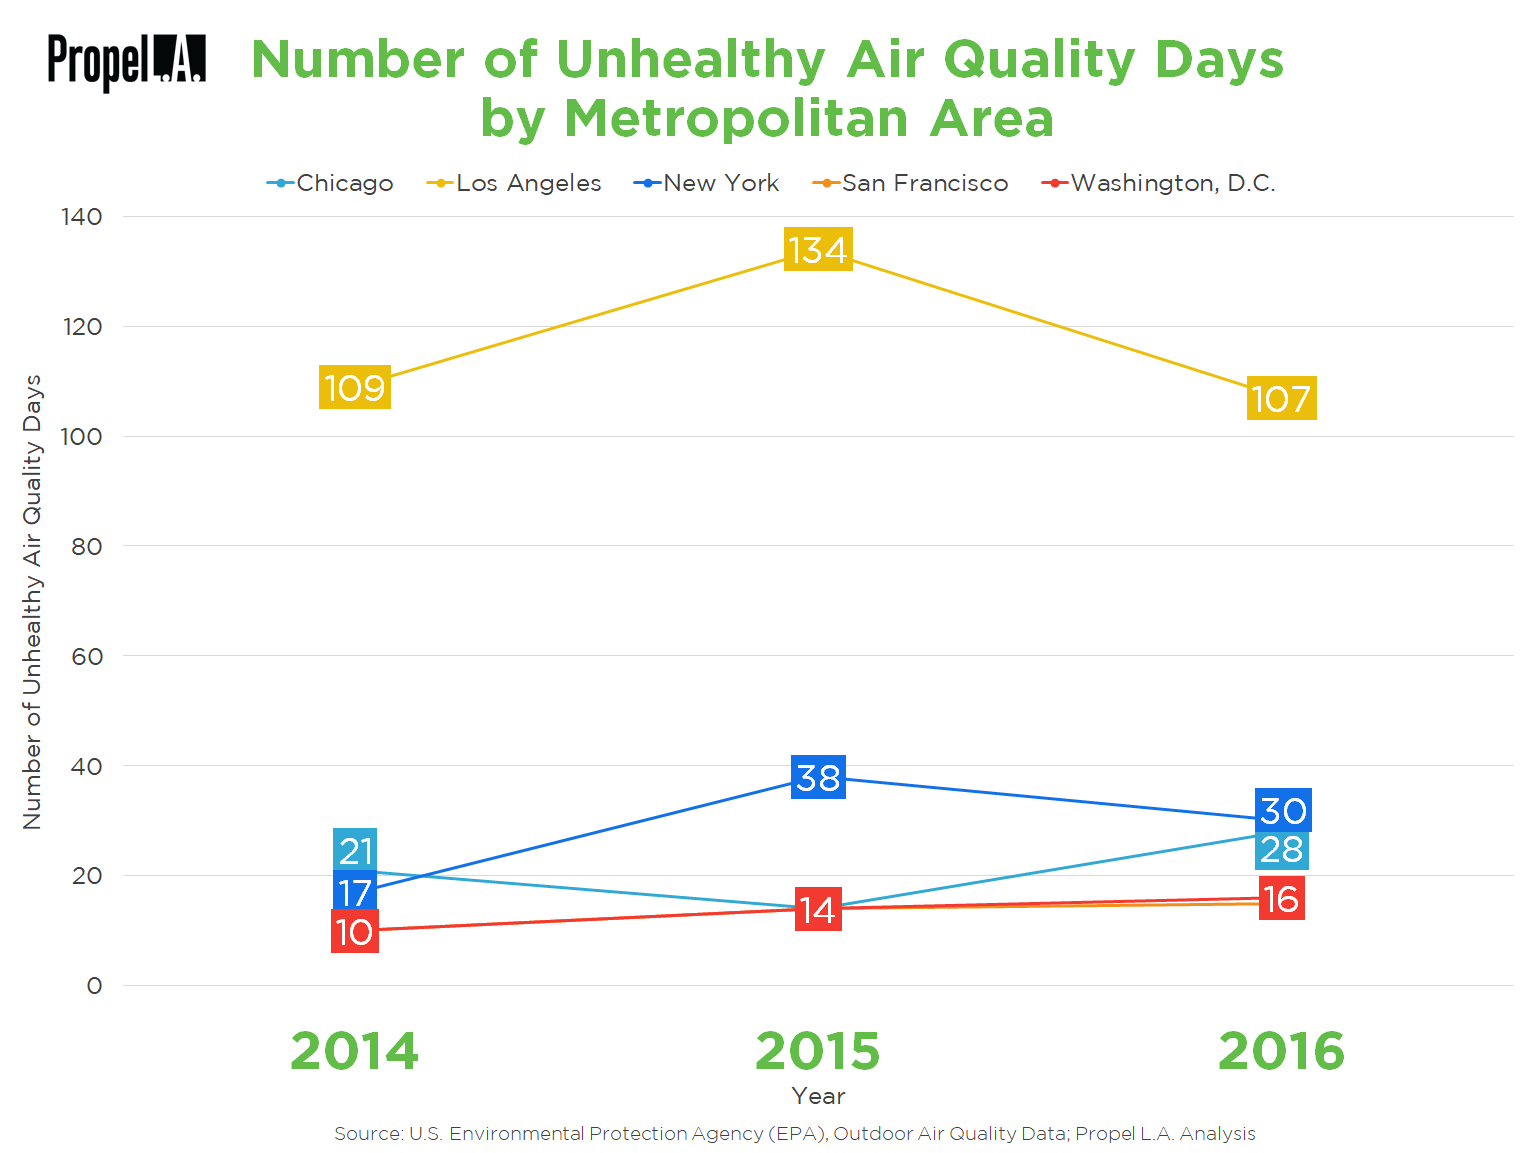 Number of Unhealthy Air Quality Days by Metropolitan Area